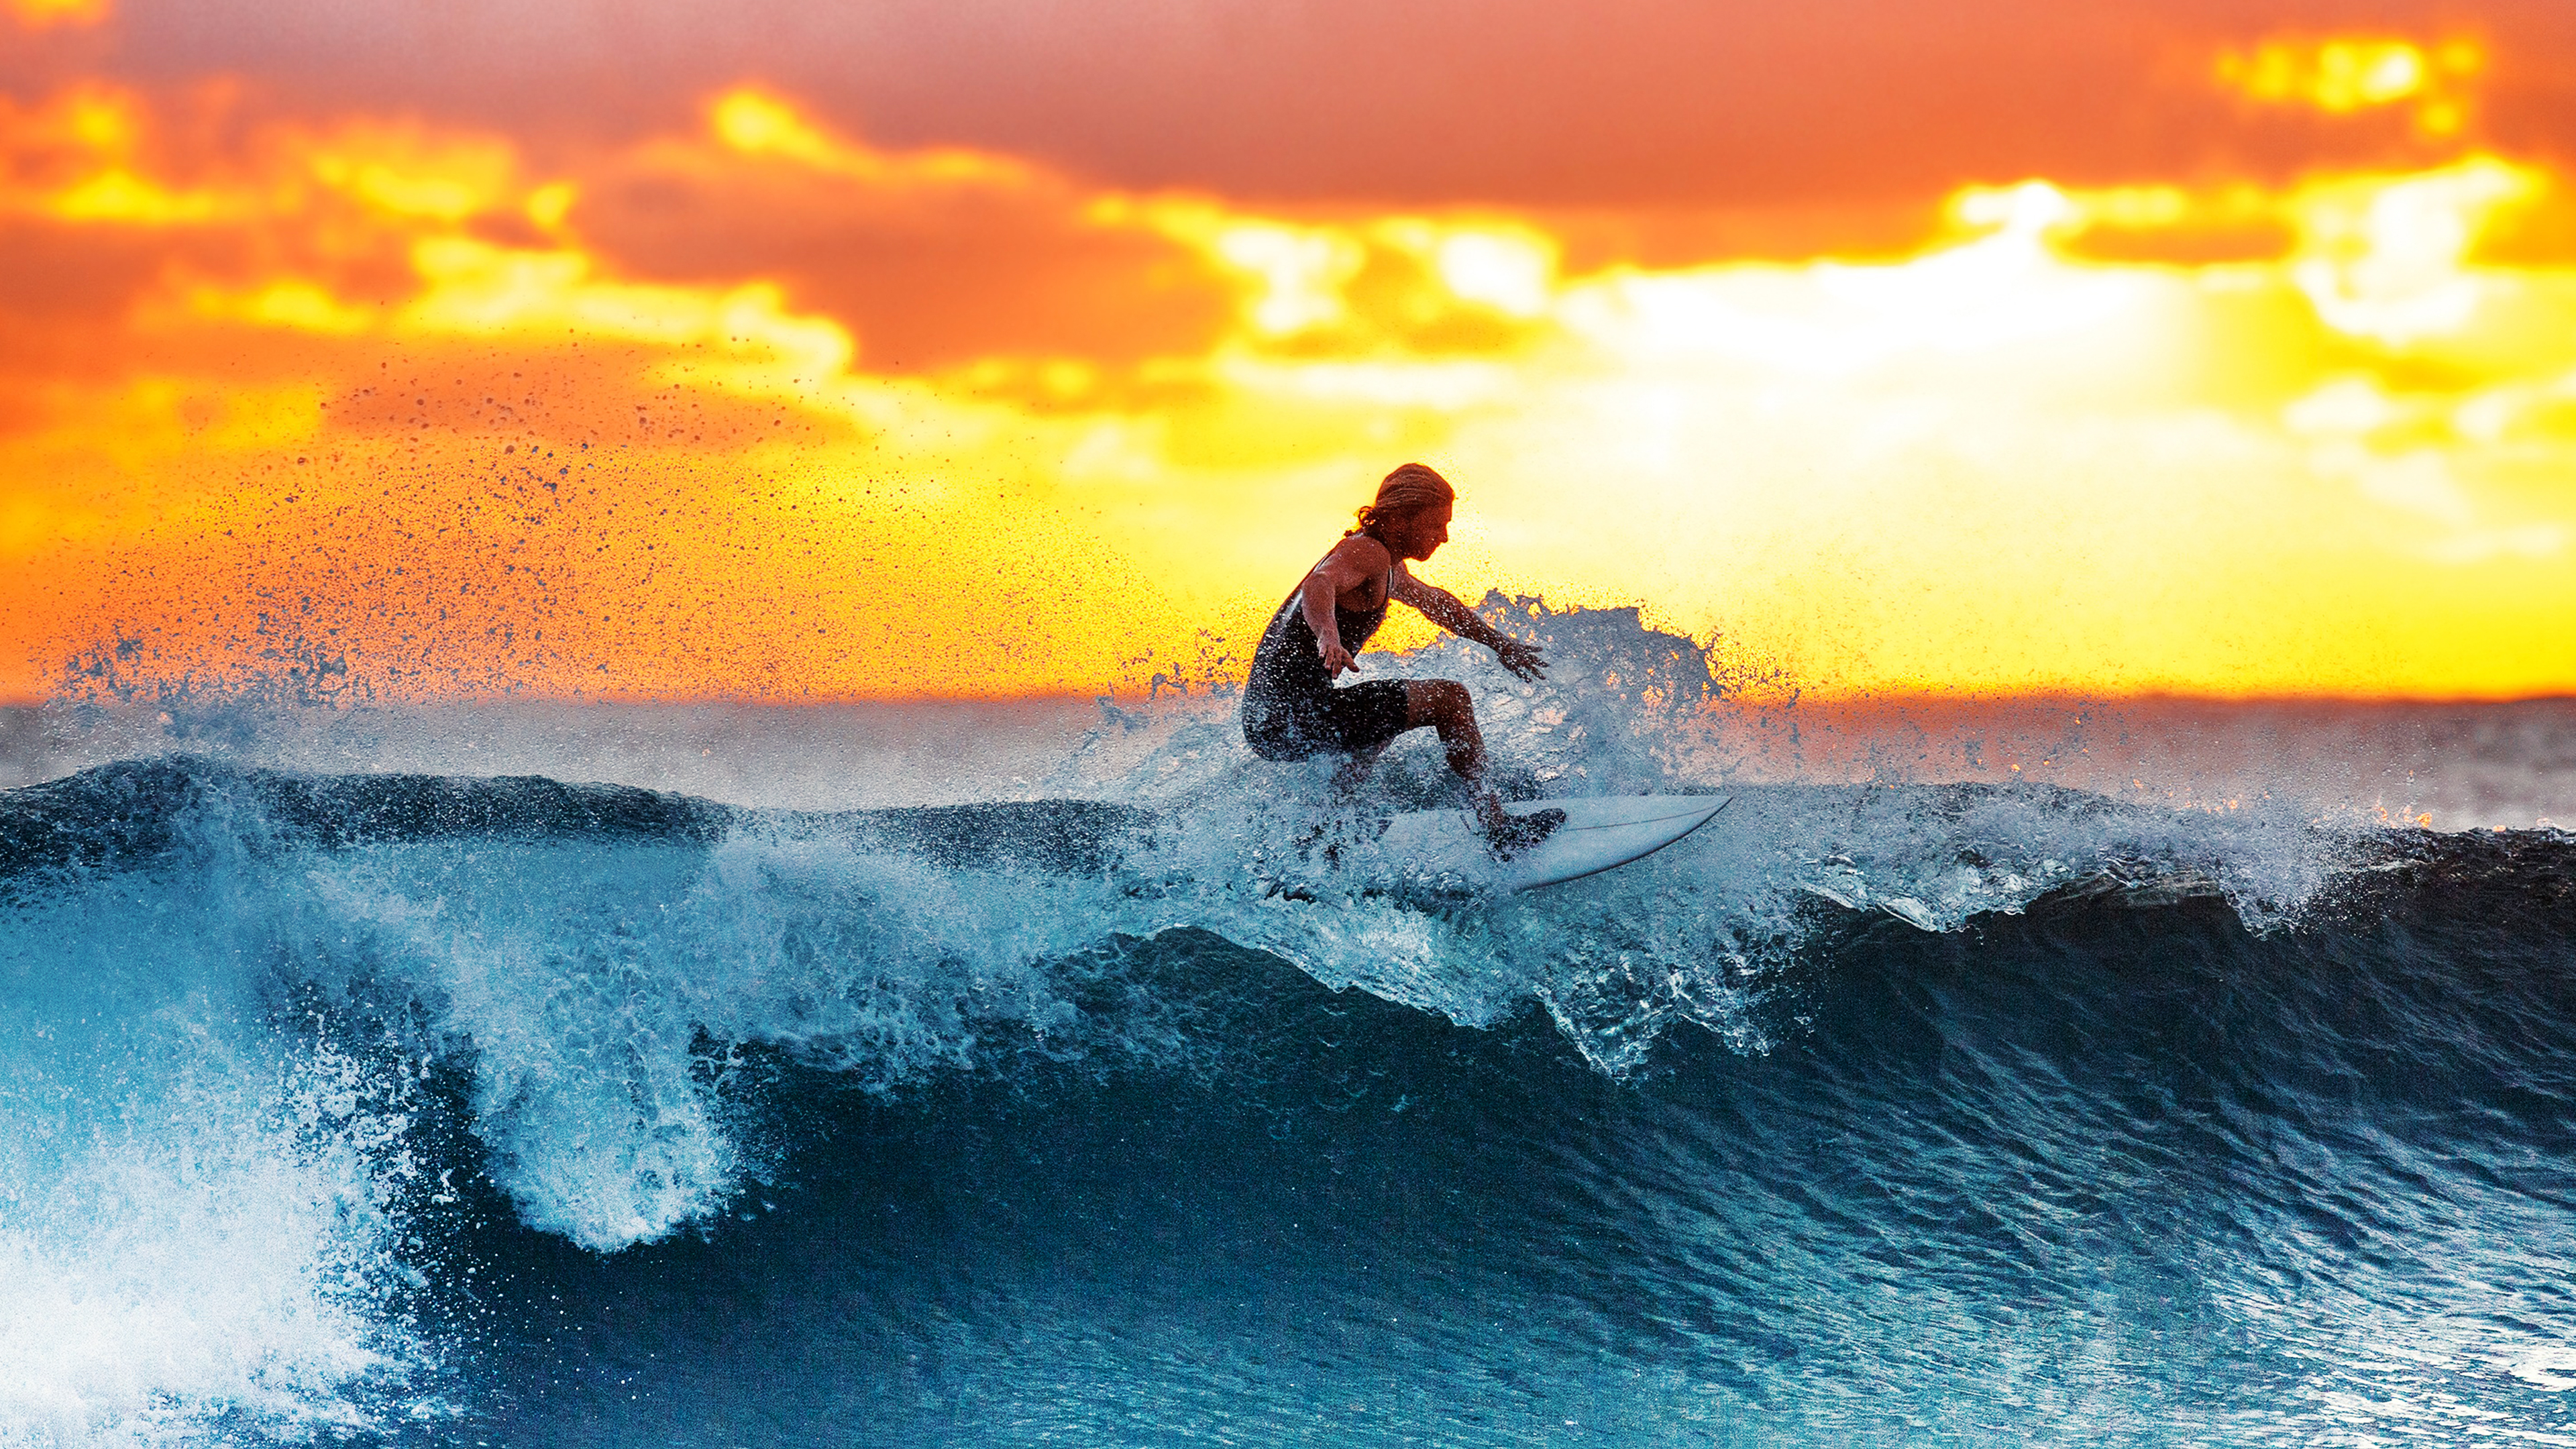 Free Surfer Chromebook Wallpaper Ready For Download